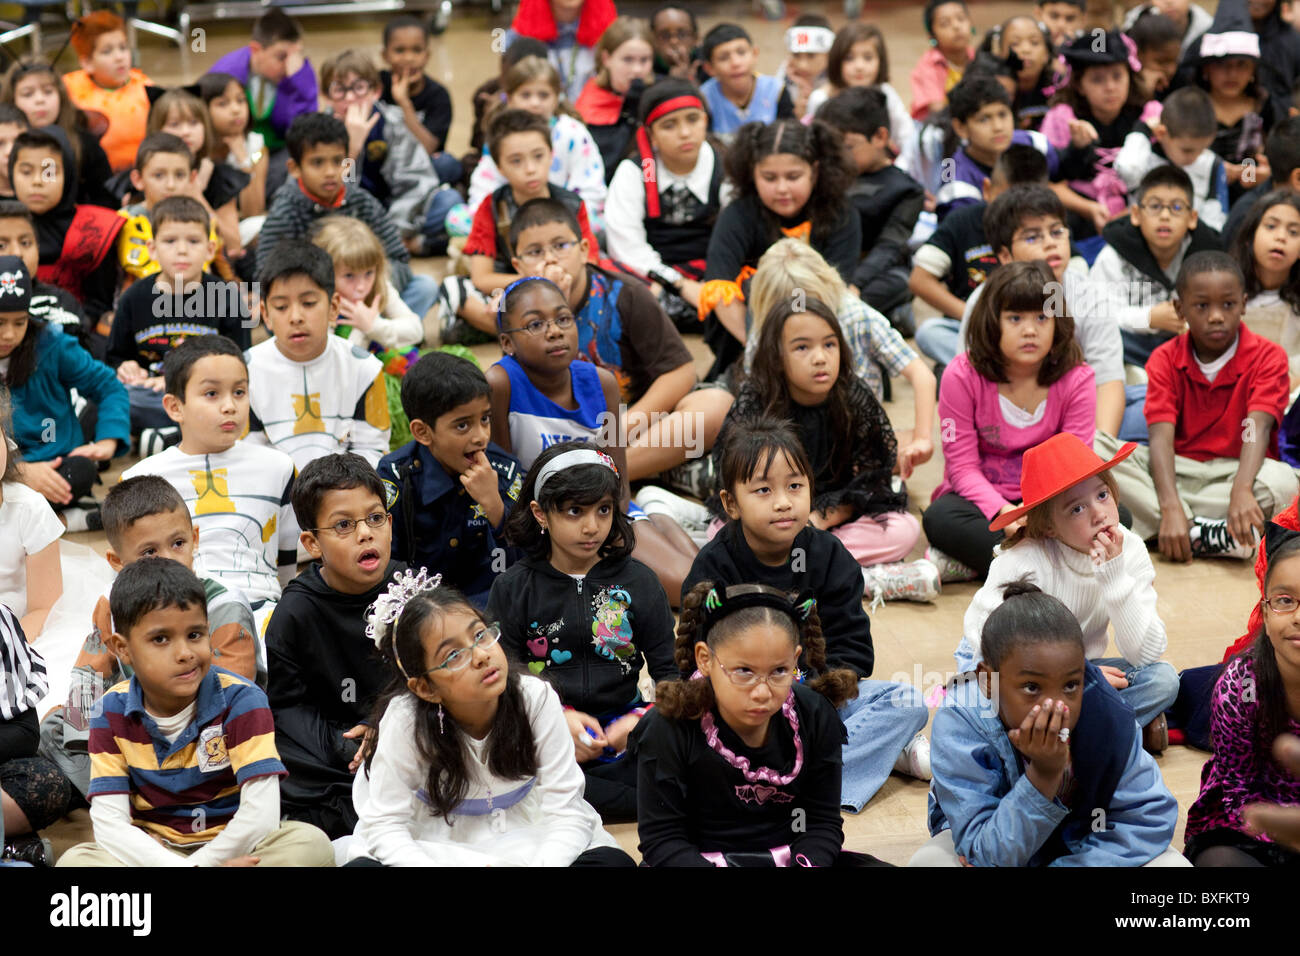 Elementary 3rd grade students listen to children's author Derrick Barnes read from one of his books at school - Stock Image